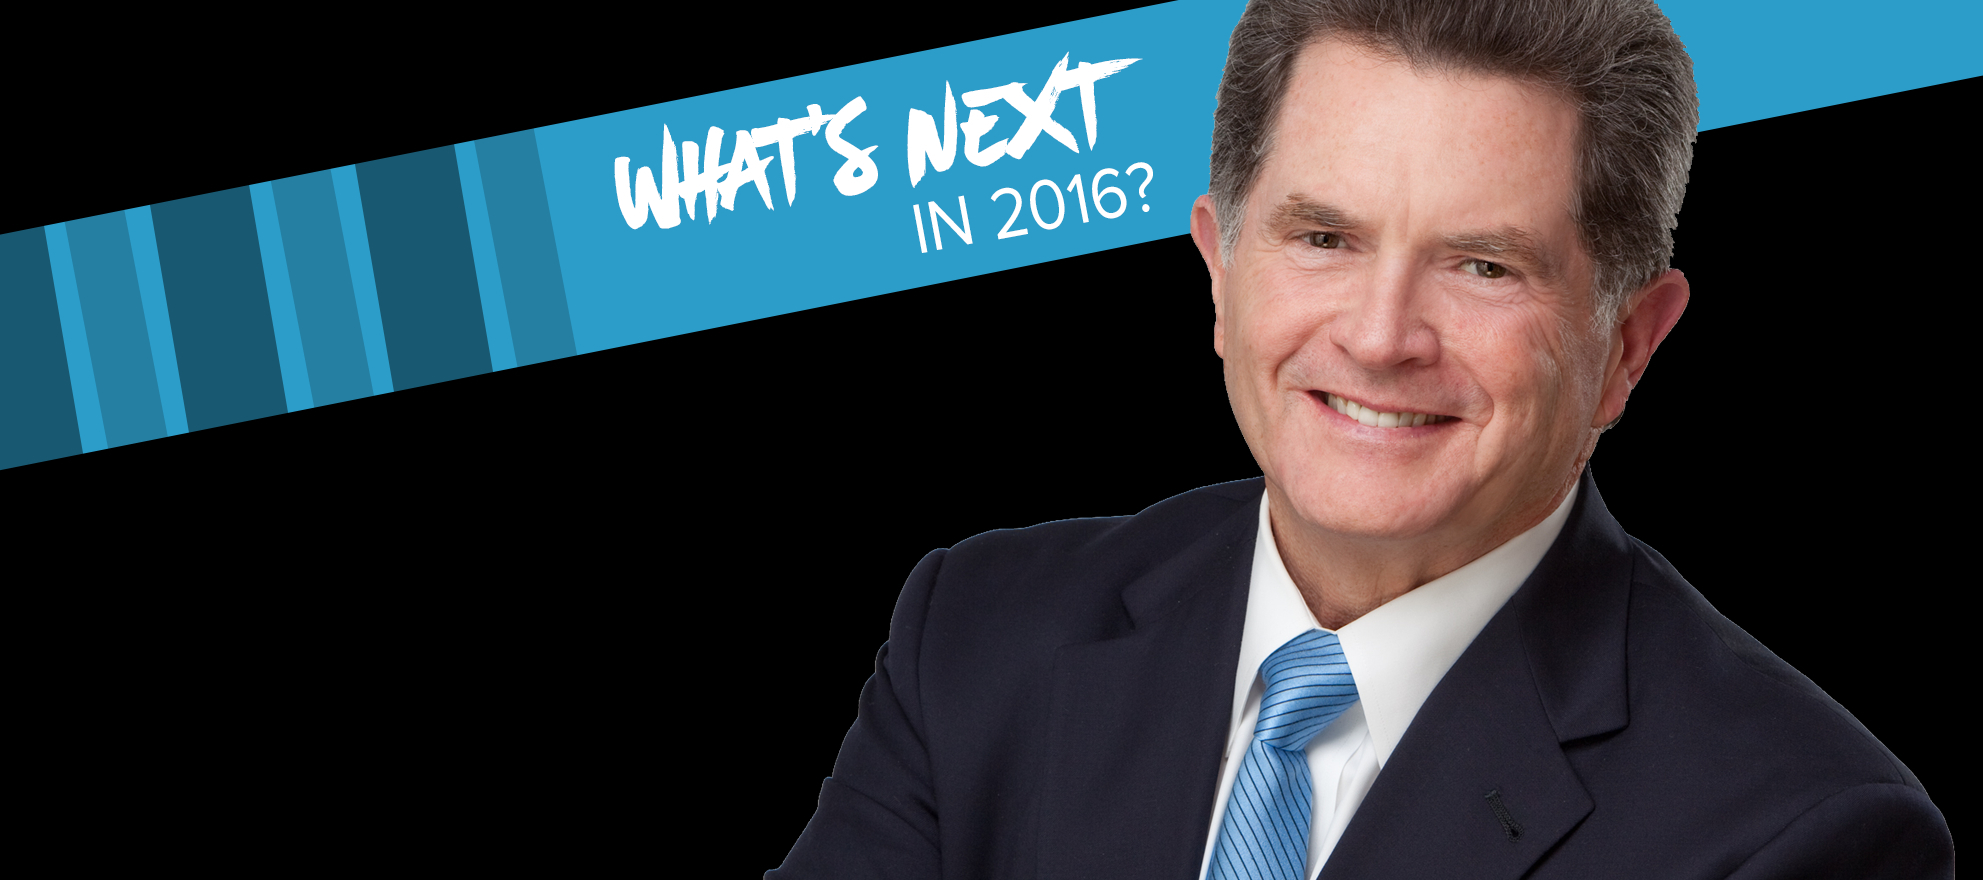 Patrick Stone on what's next in the market for 2016